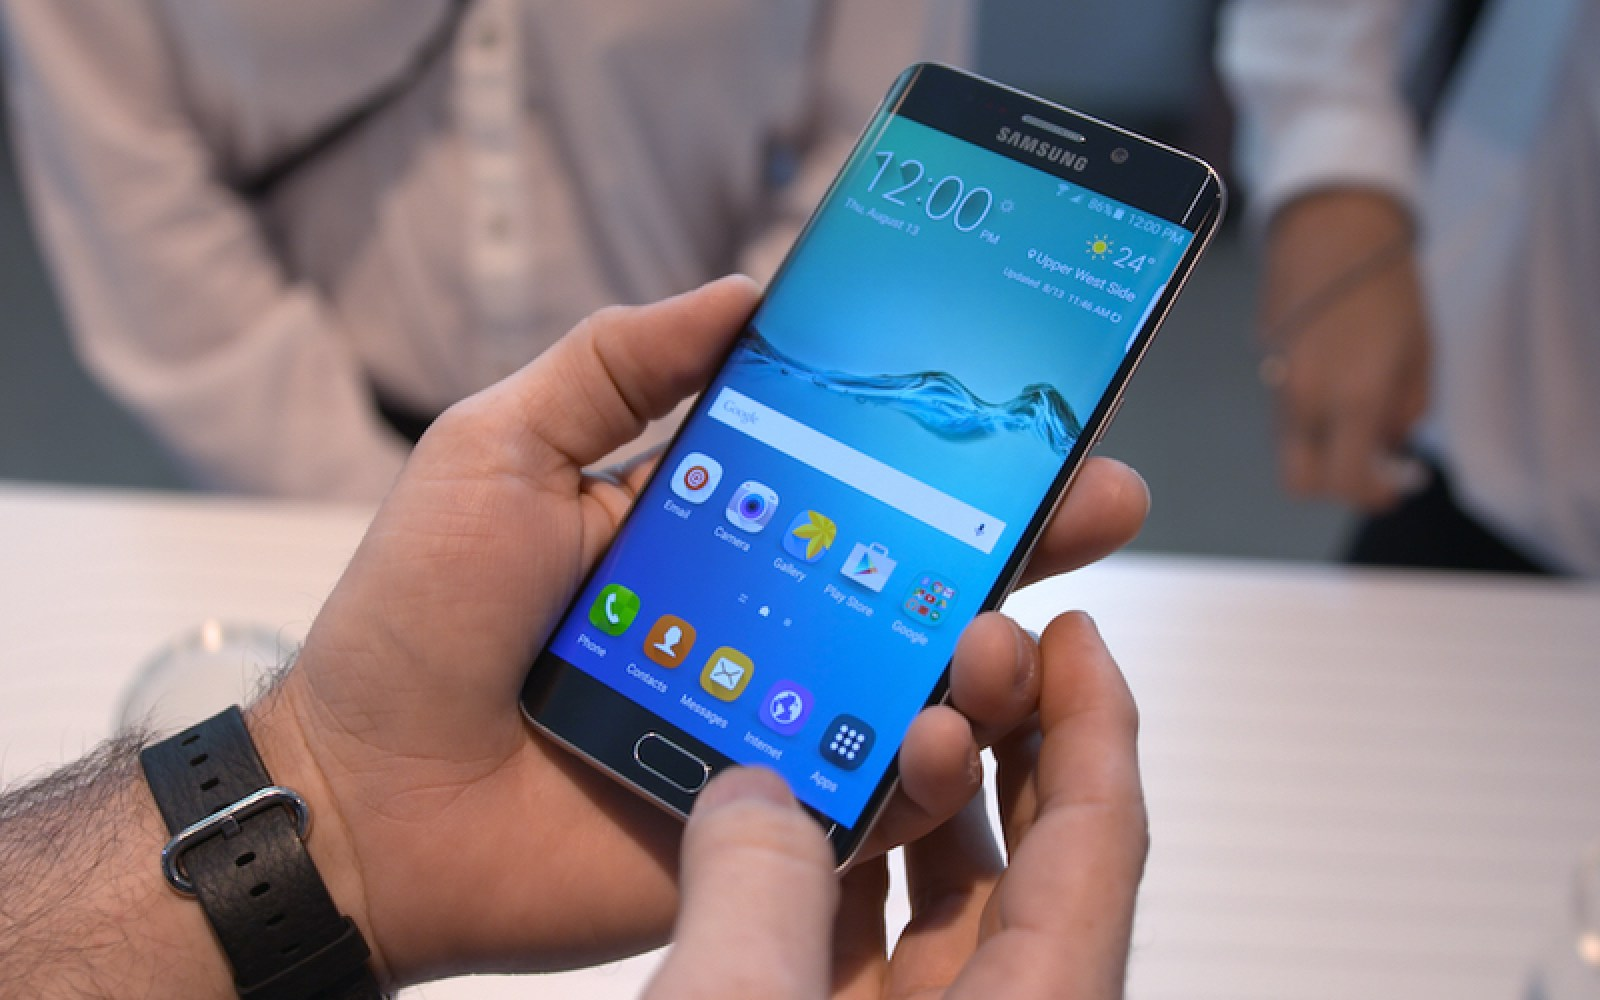 WSJ: Samsung Galaxy S7 to feature 3D Touch, fast-charging Type C, maybe retina scanner too